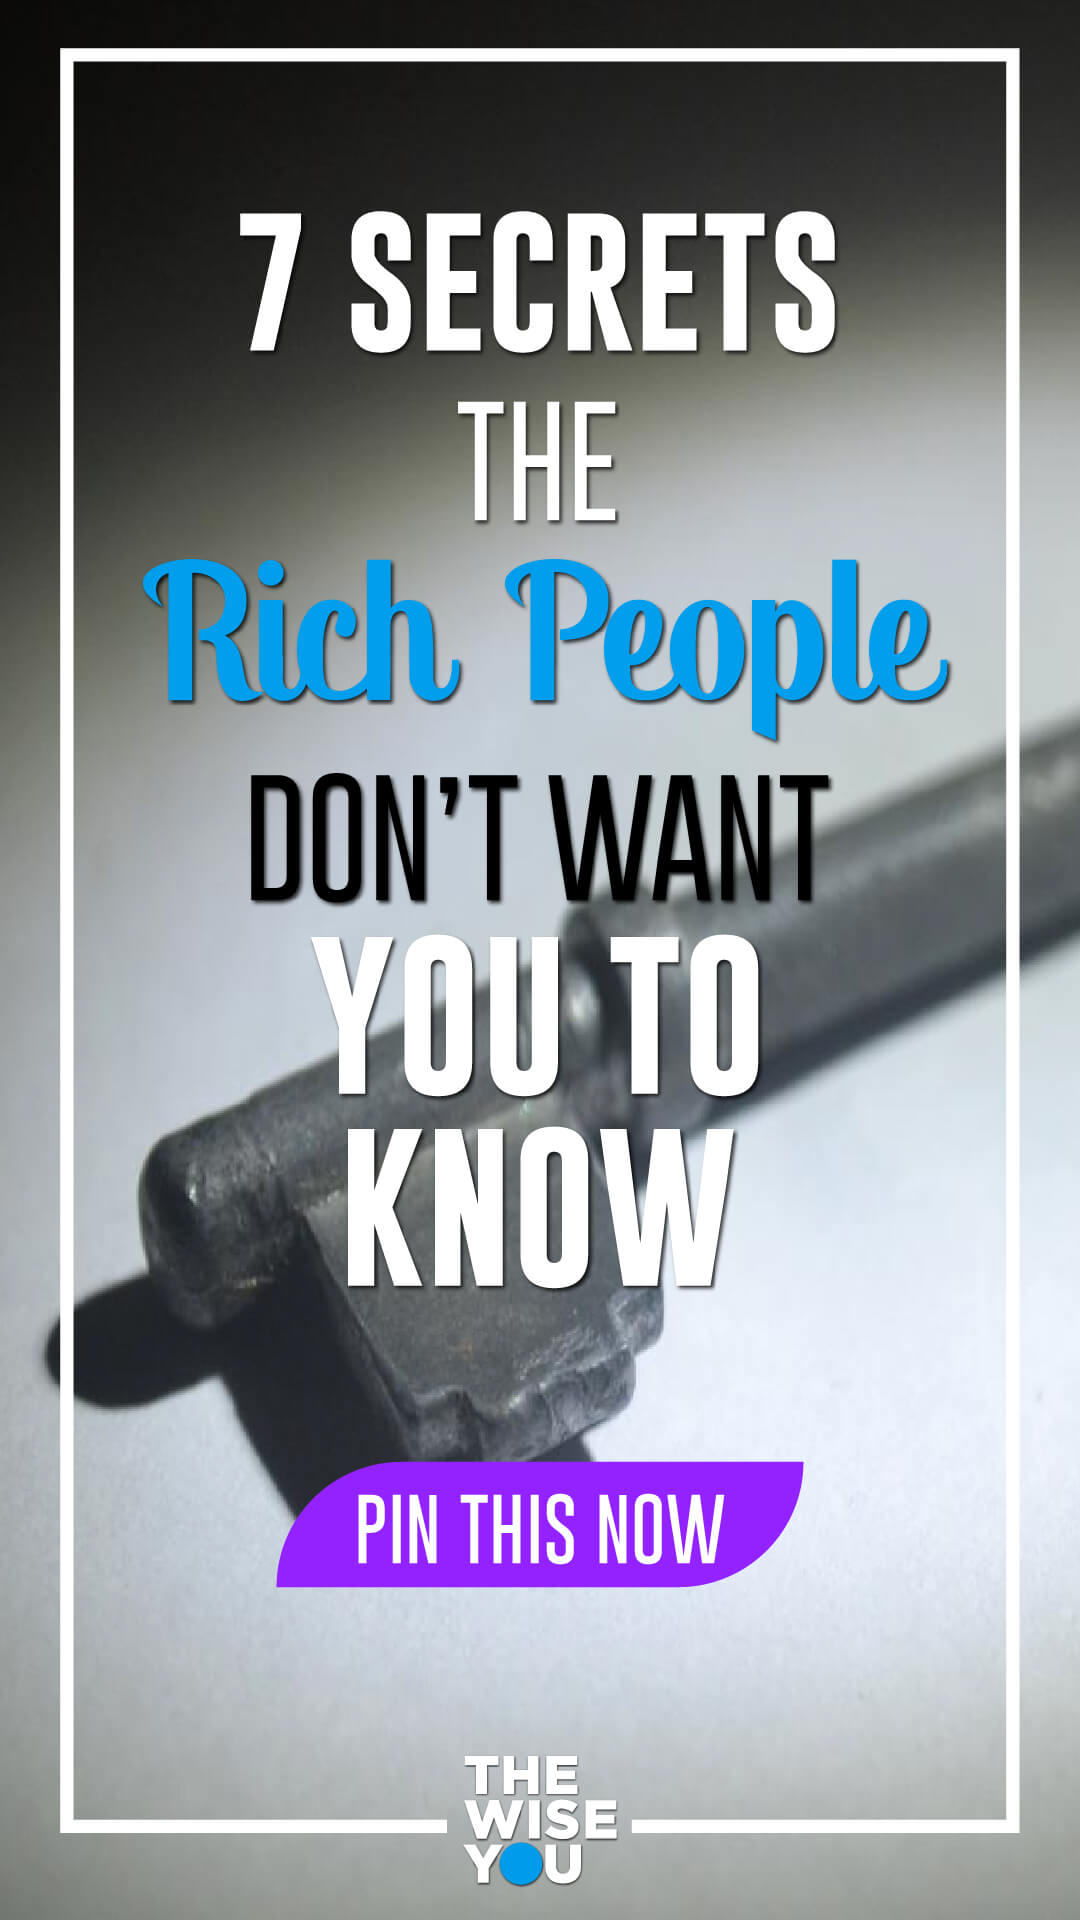 7 Secrets What the Rich Don't Want You to Know